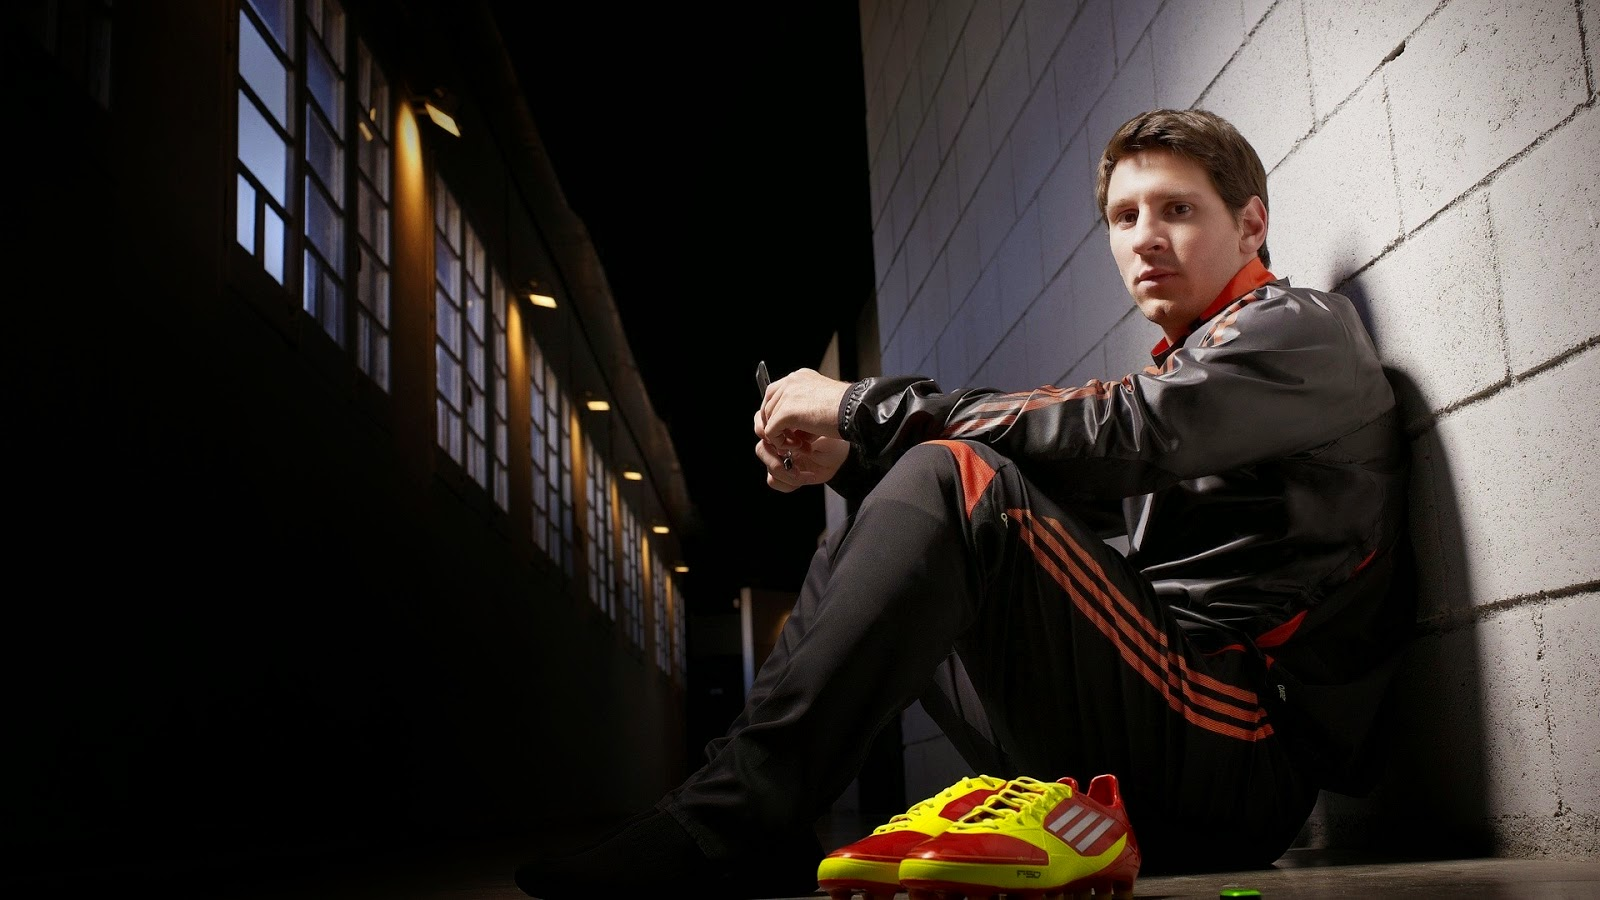 ALL SPORTS PLAYERS: Lionel Messi hd Wallpapers 2014 Fifa World Cup